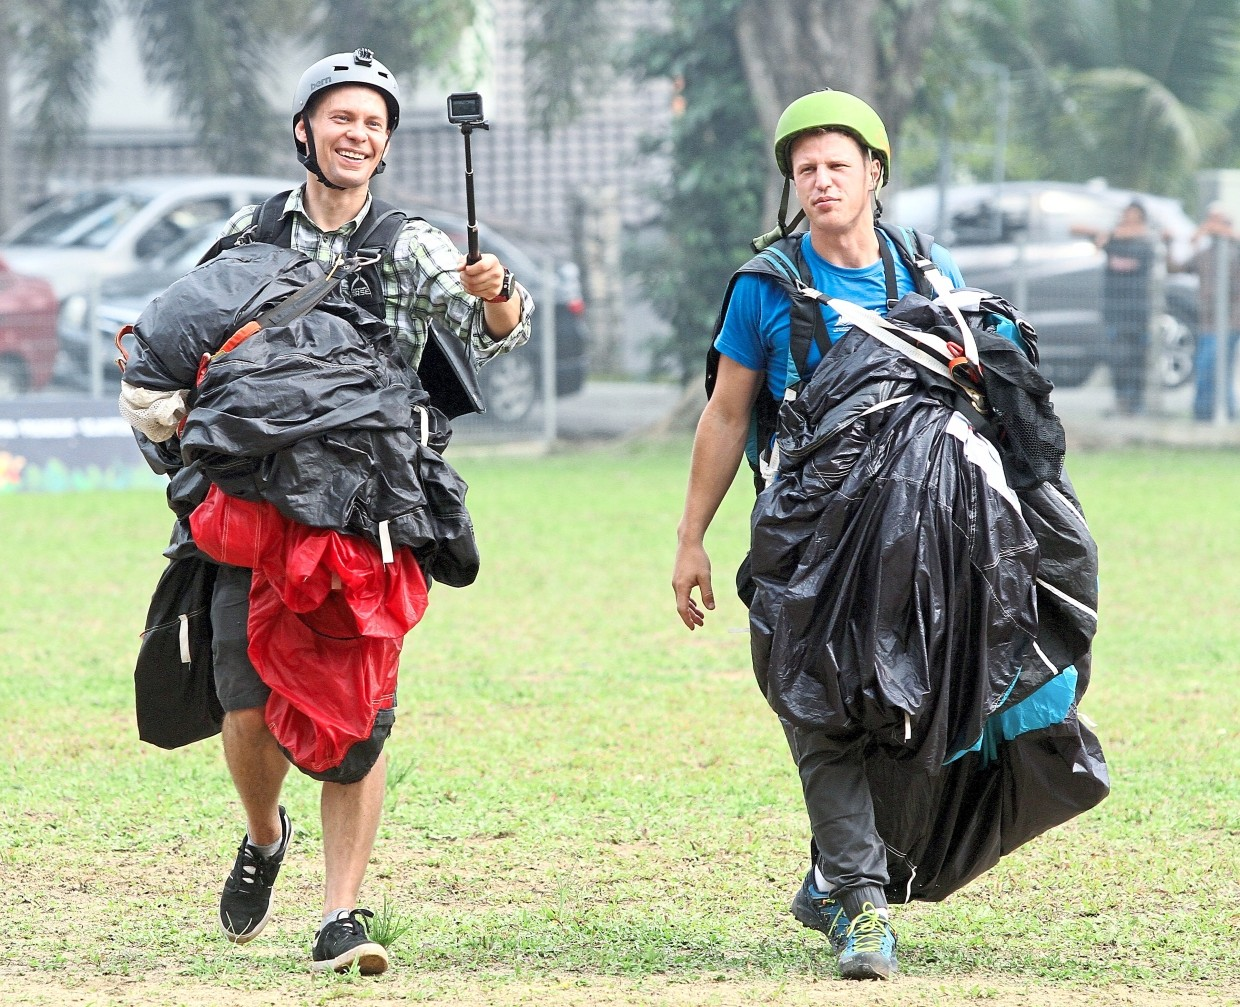 Base jumpers Ciesielski (left) and Filip Kubica from Poland reeling from their stunt at Gua Damai.